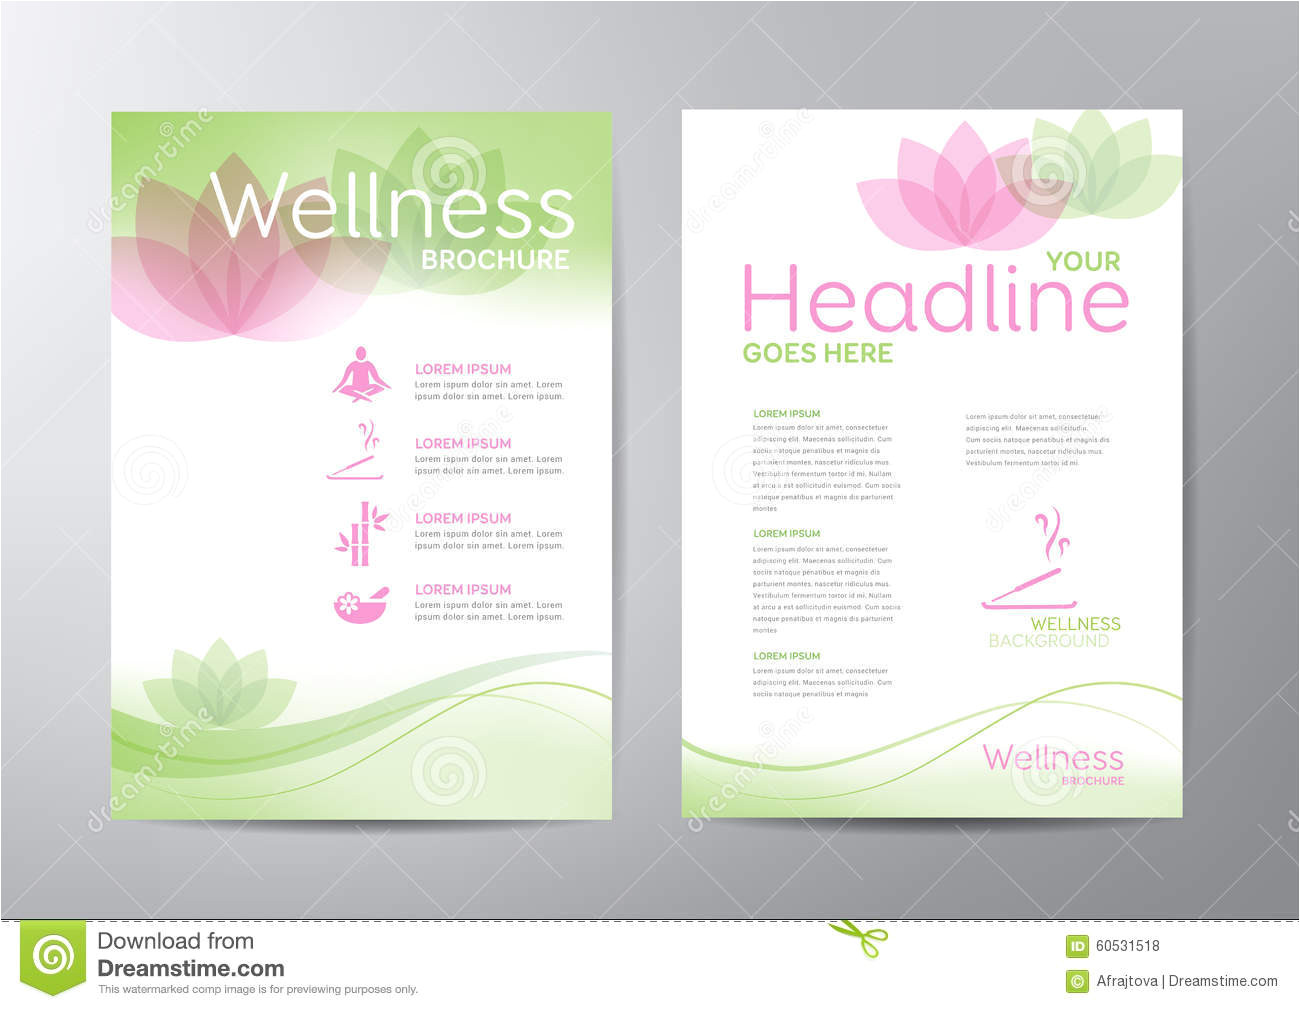 stock illustration wellness brochure template relaxation healthcare medical topics image60531518